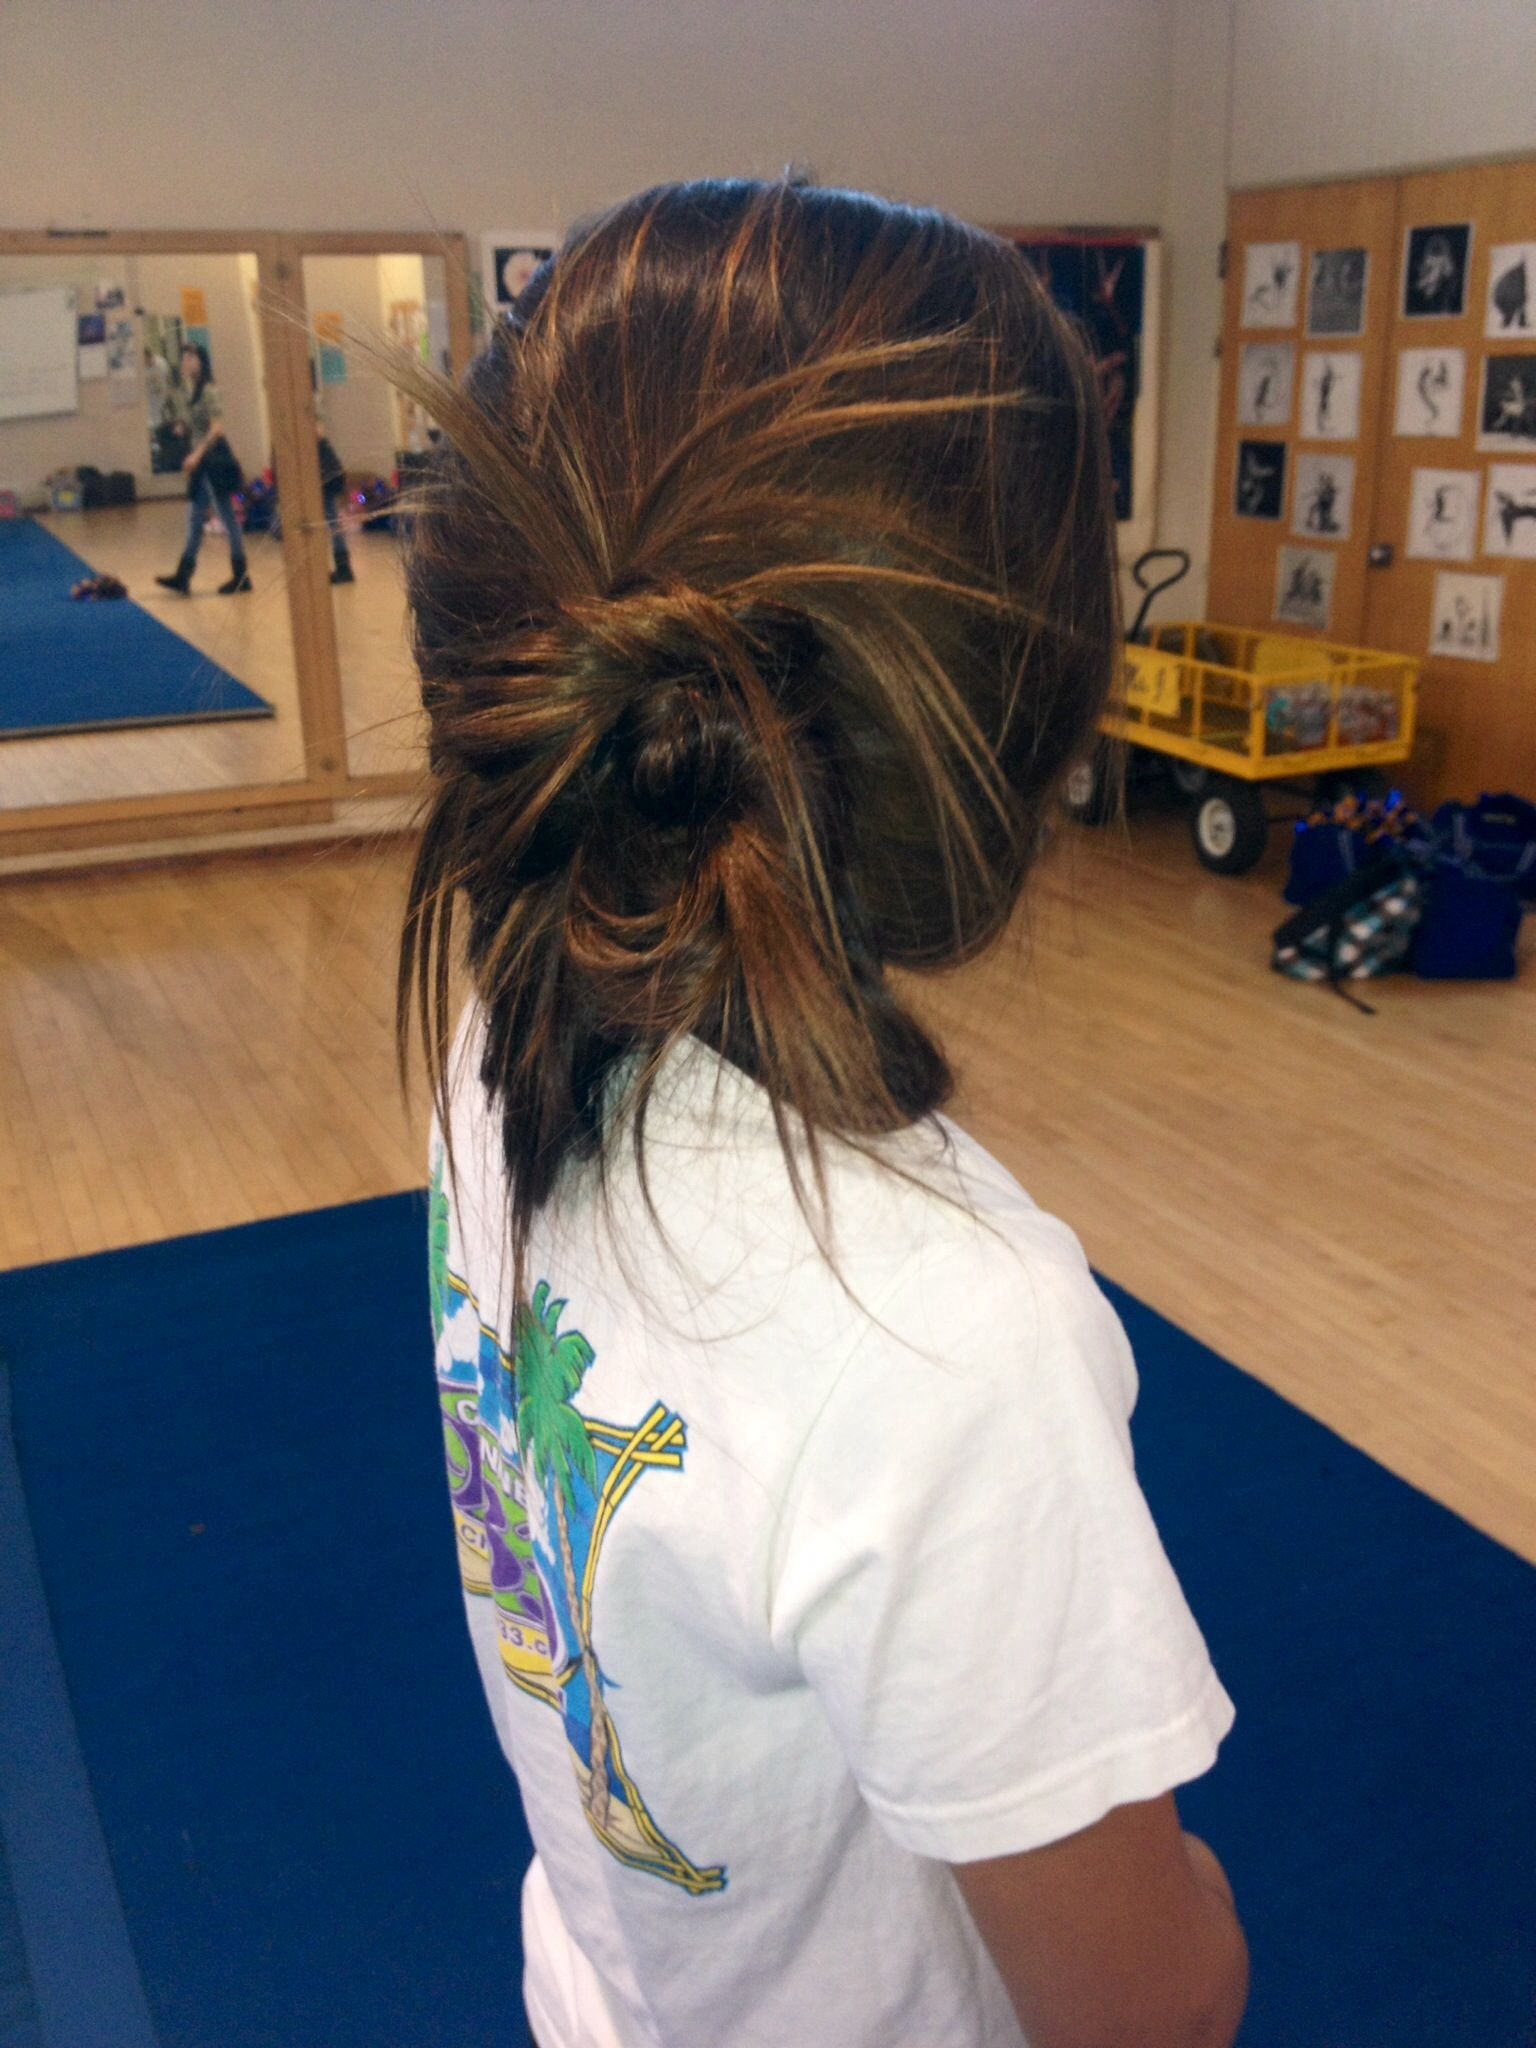 The Best Cute Hairstyles Cheer Practice Hair Pictures